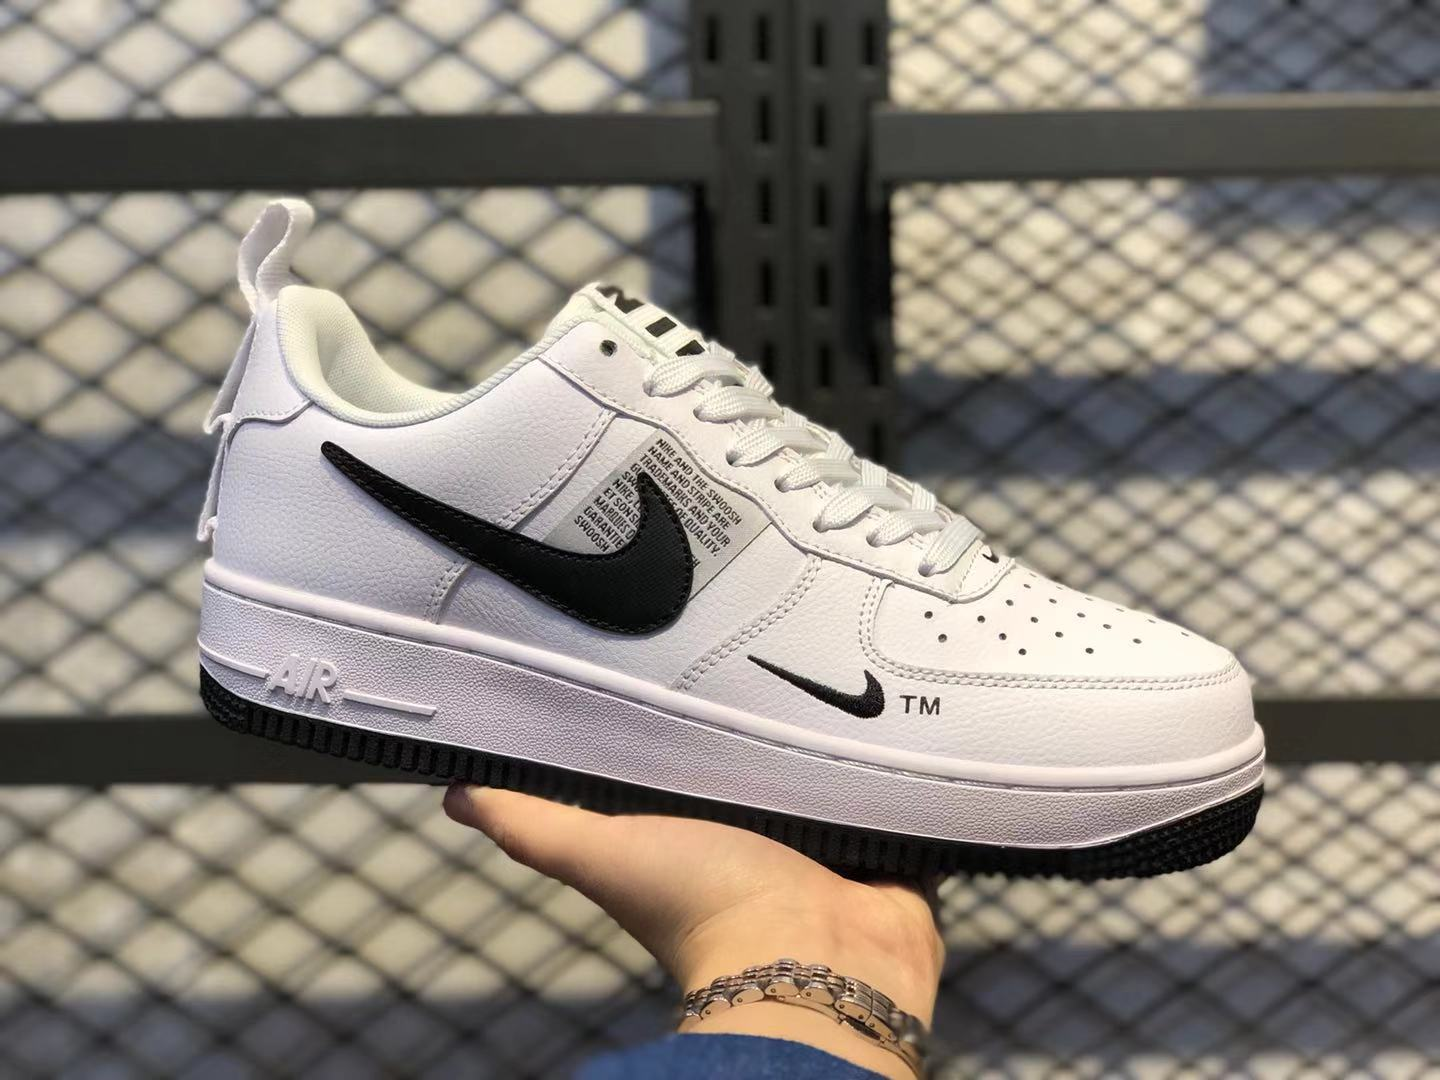 Nike Air Force 1 Low White/Black-White Casual Shoes For Sale CQ4611-100